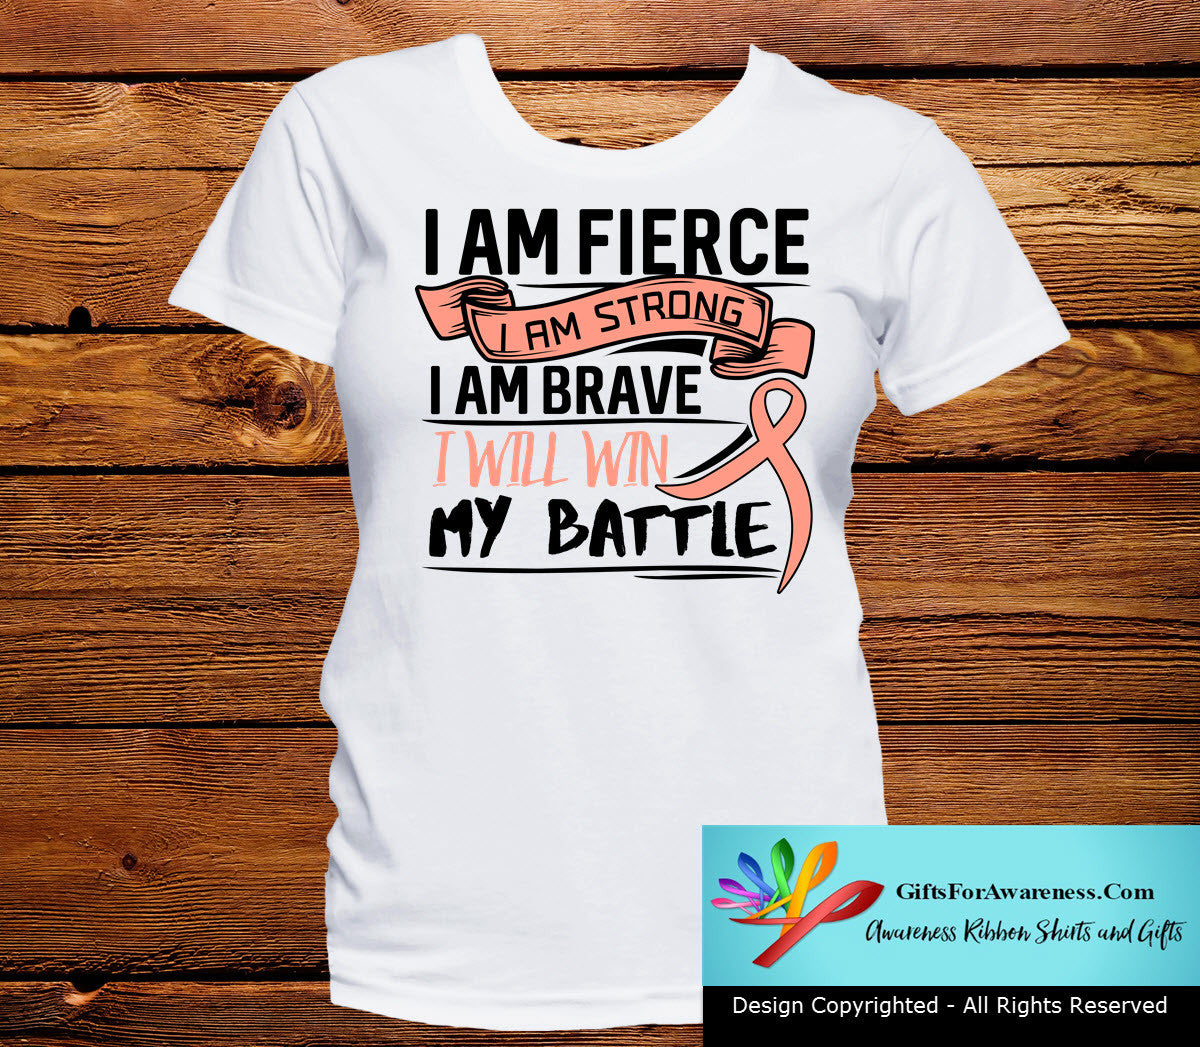 Endometrial Cancer I Am Fierce Strong and Brave Shirts - GiftsForAwareness